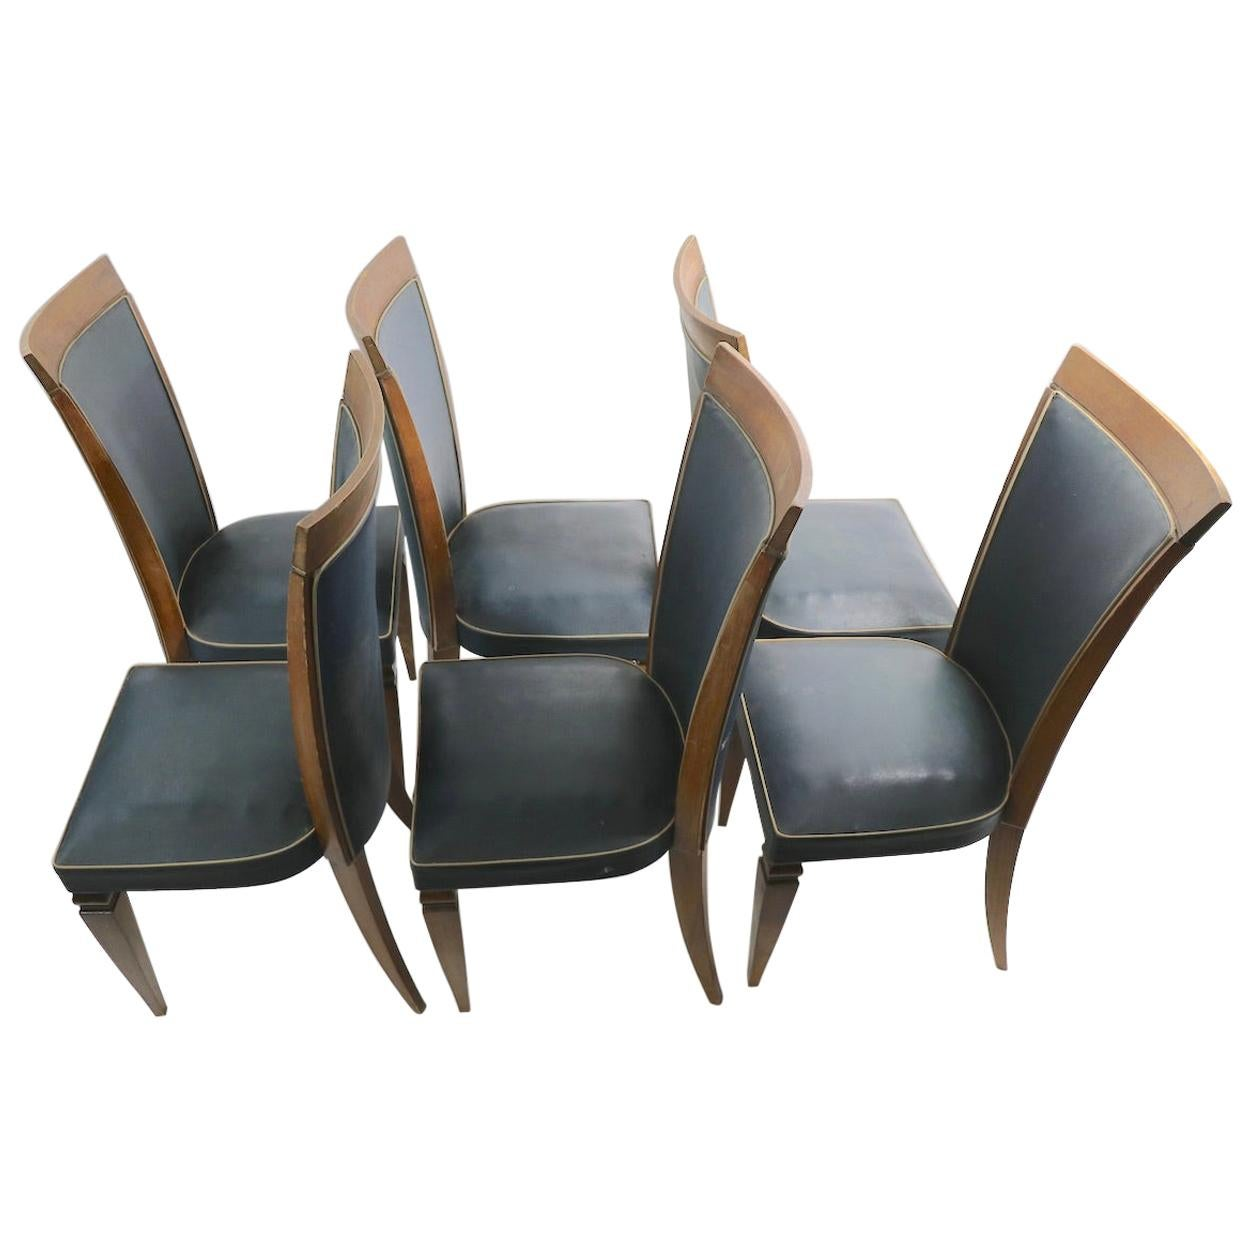 Set of Six French Art Deco High Back Dining Chairs Possibly Gaston Poisson